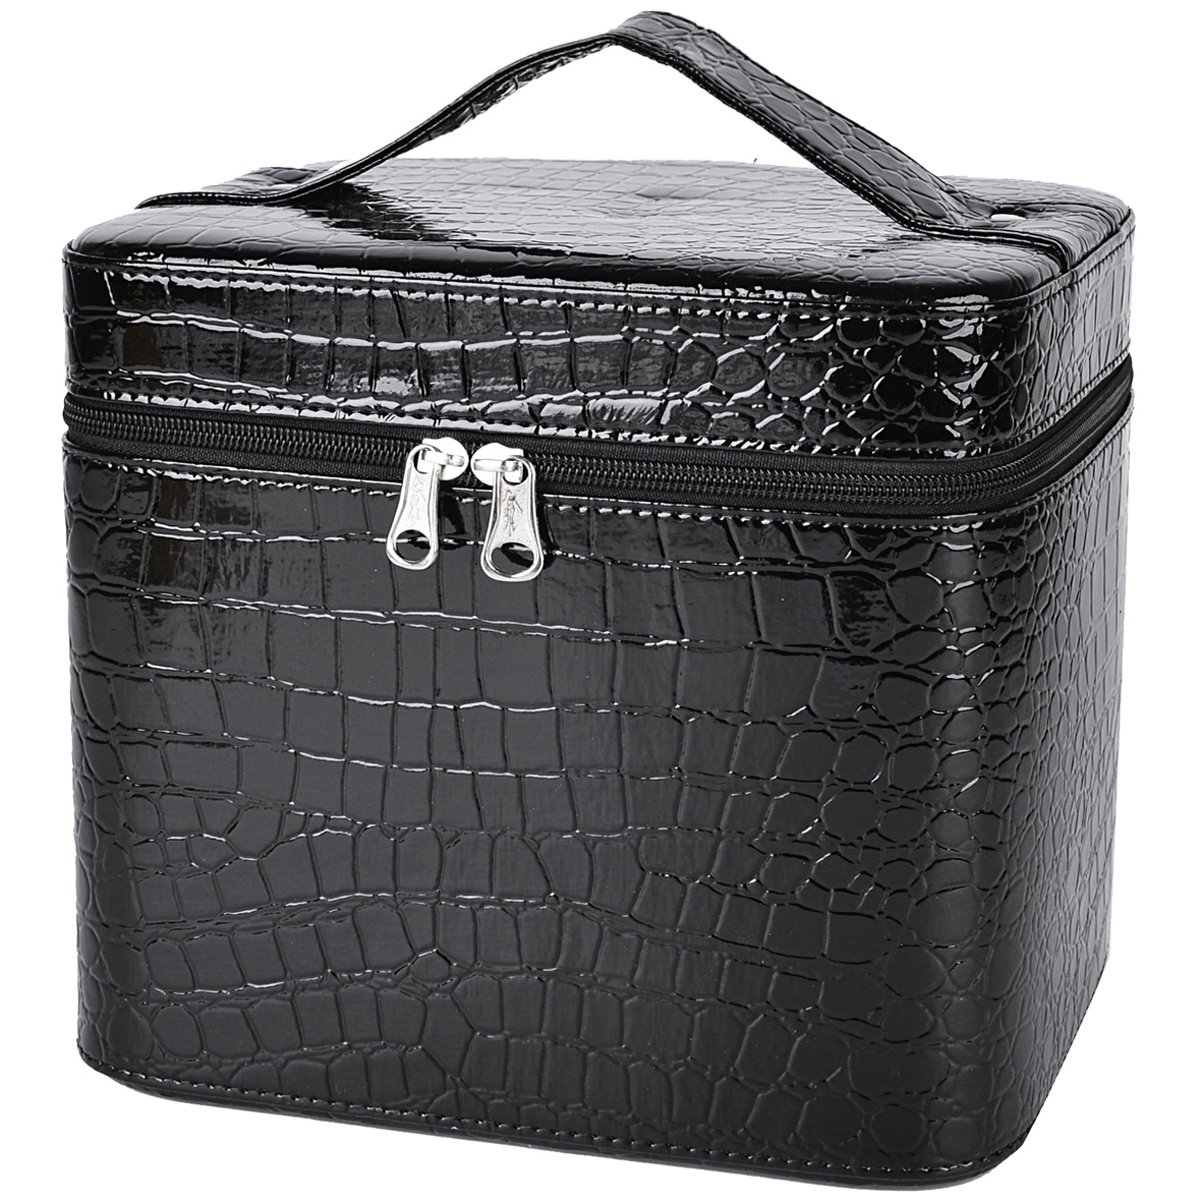 Train Case,COOFIT Portable Travel Makeup Case Crocodile Pattern Leather Beauty Box for Women Large Black